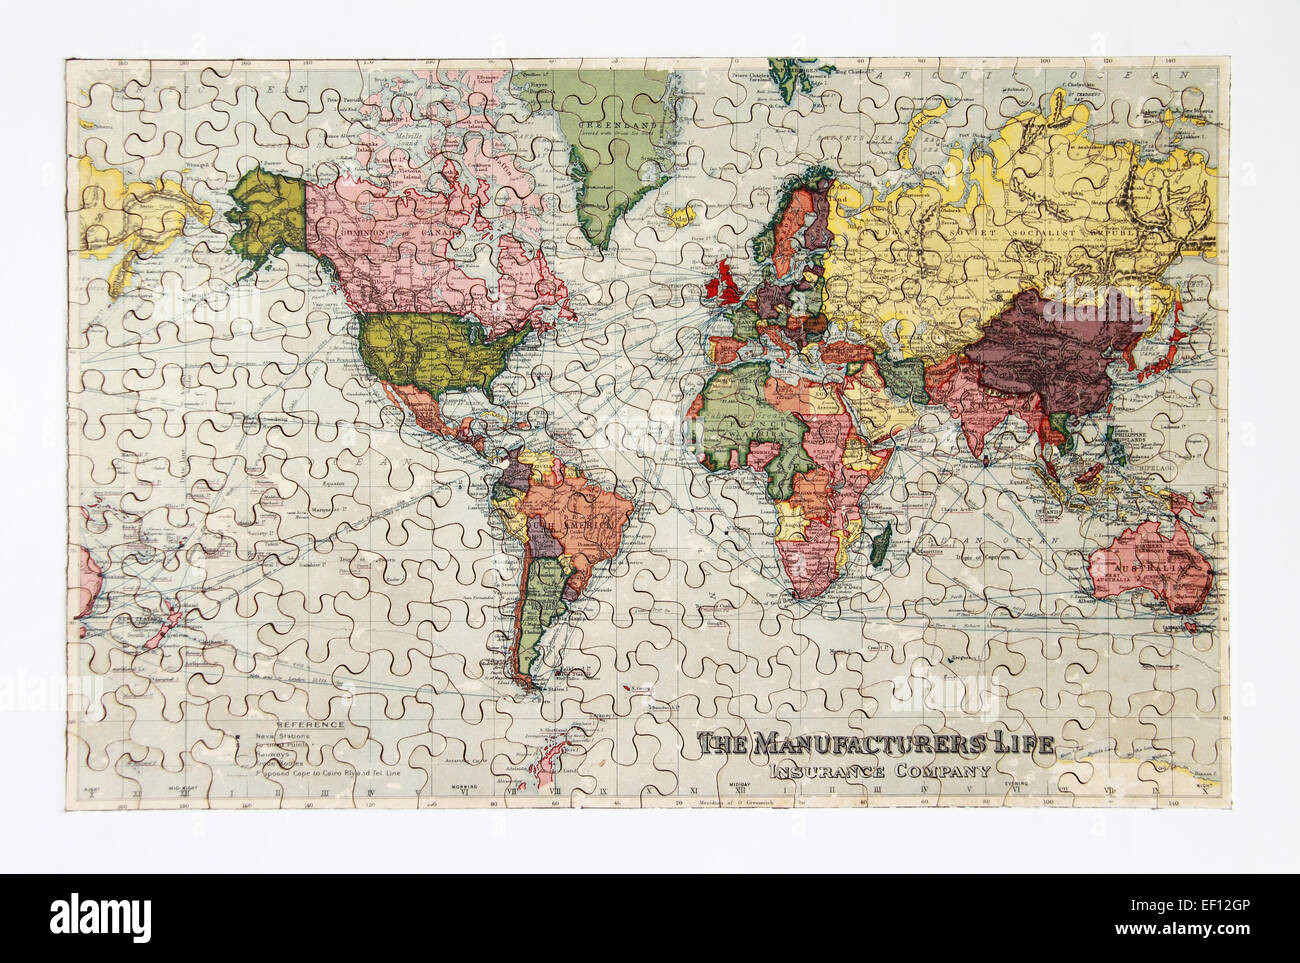 World Map Of Morocco%0A      u    s World Map jigsaw produced on behalf of Manufacturer u    s Life Insurance  Company  now Munulife